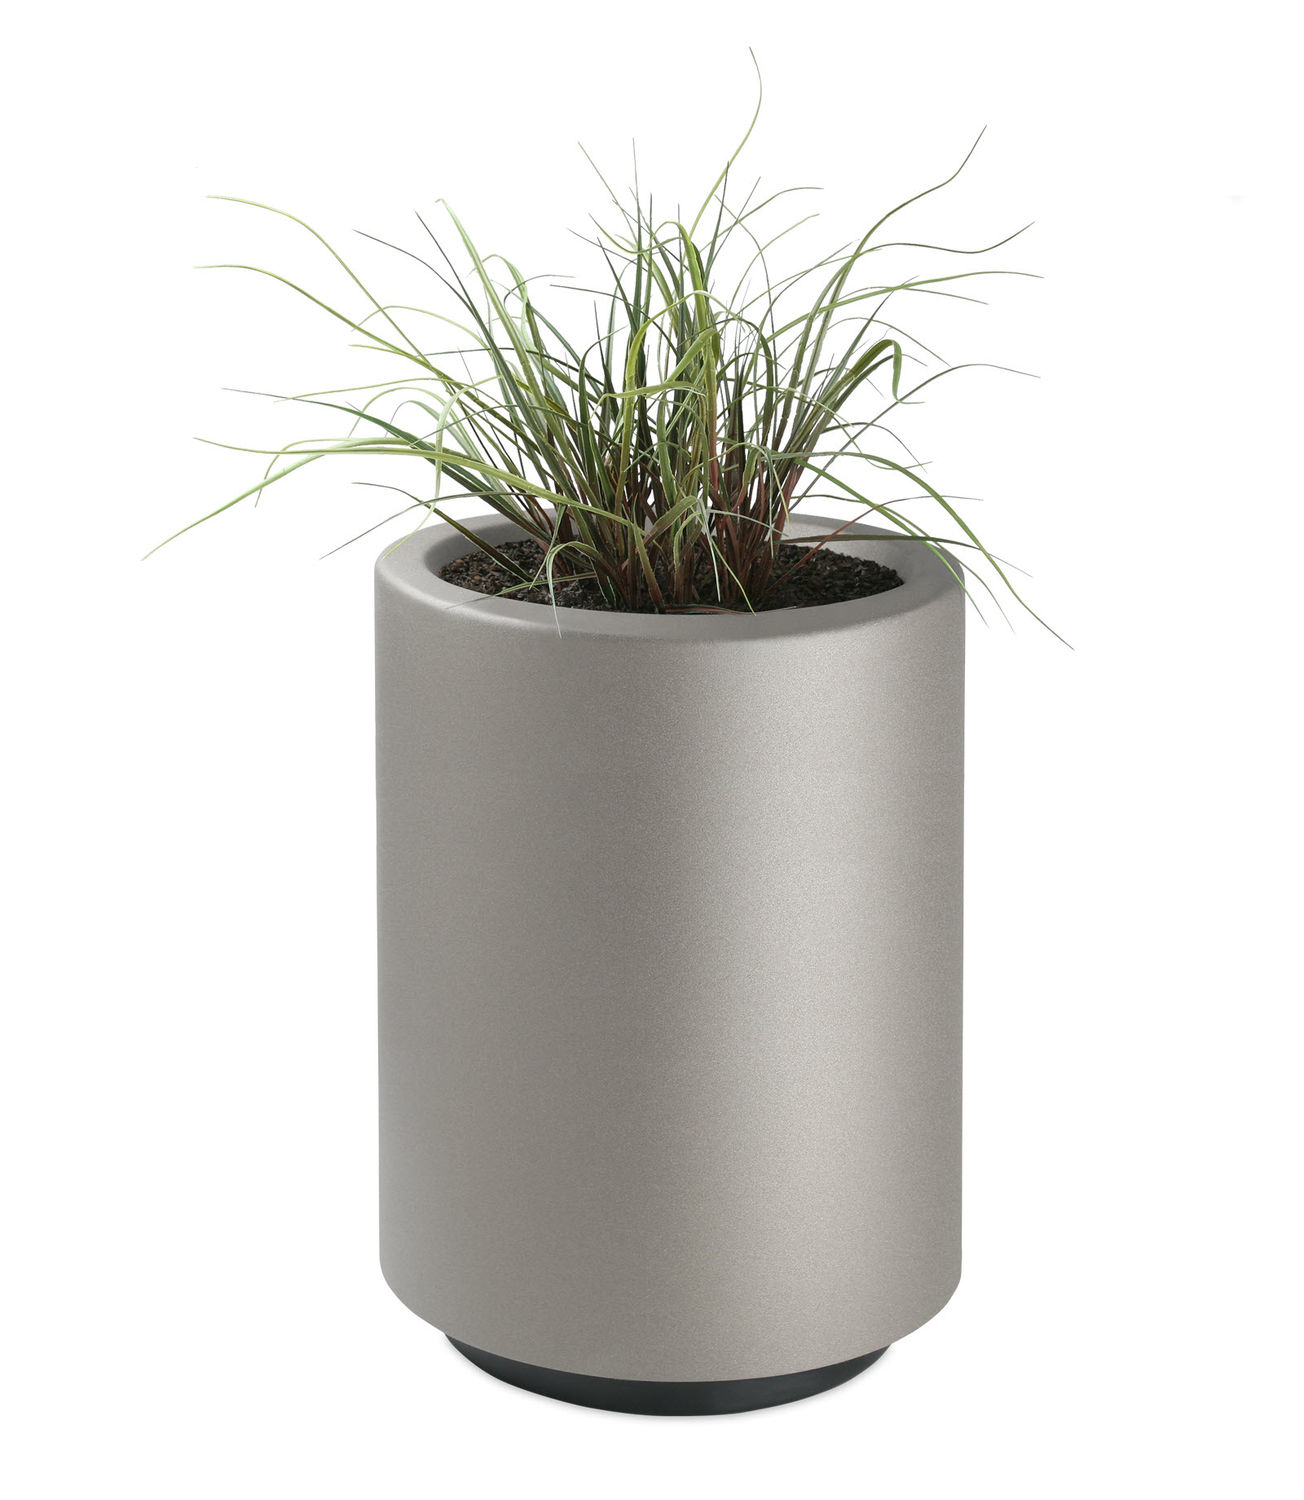 Cube Planters | Tall Resin Outdoor Planters | Fiberglass Planters